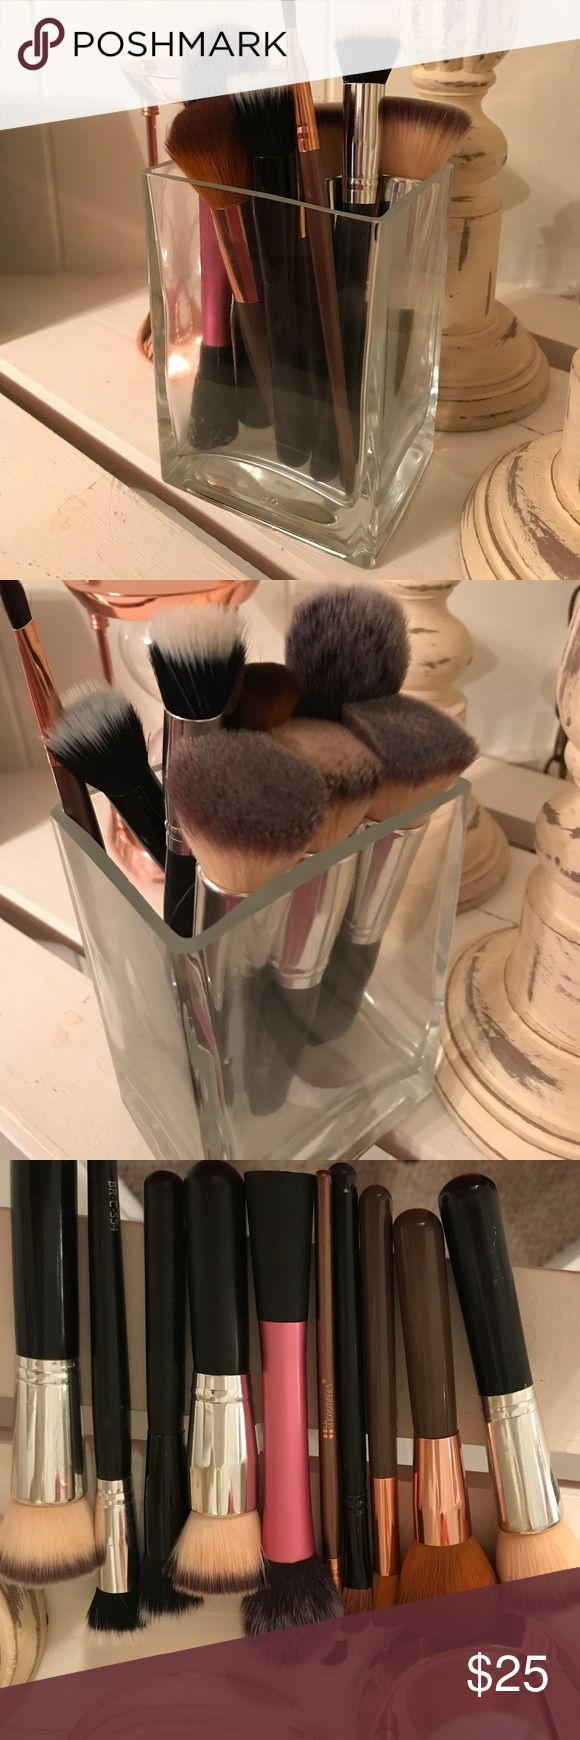 Random bunch of face brushes I have foundation, setting and just random face brushes. Great condition. Have been washed and disinfected. real techniques Makeup Brushes & Tools